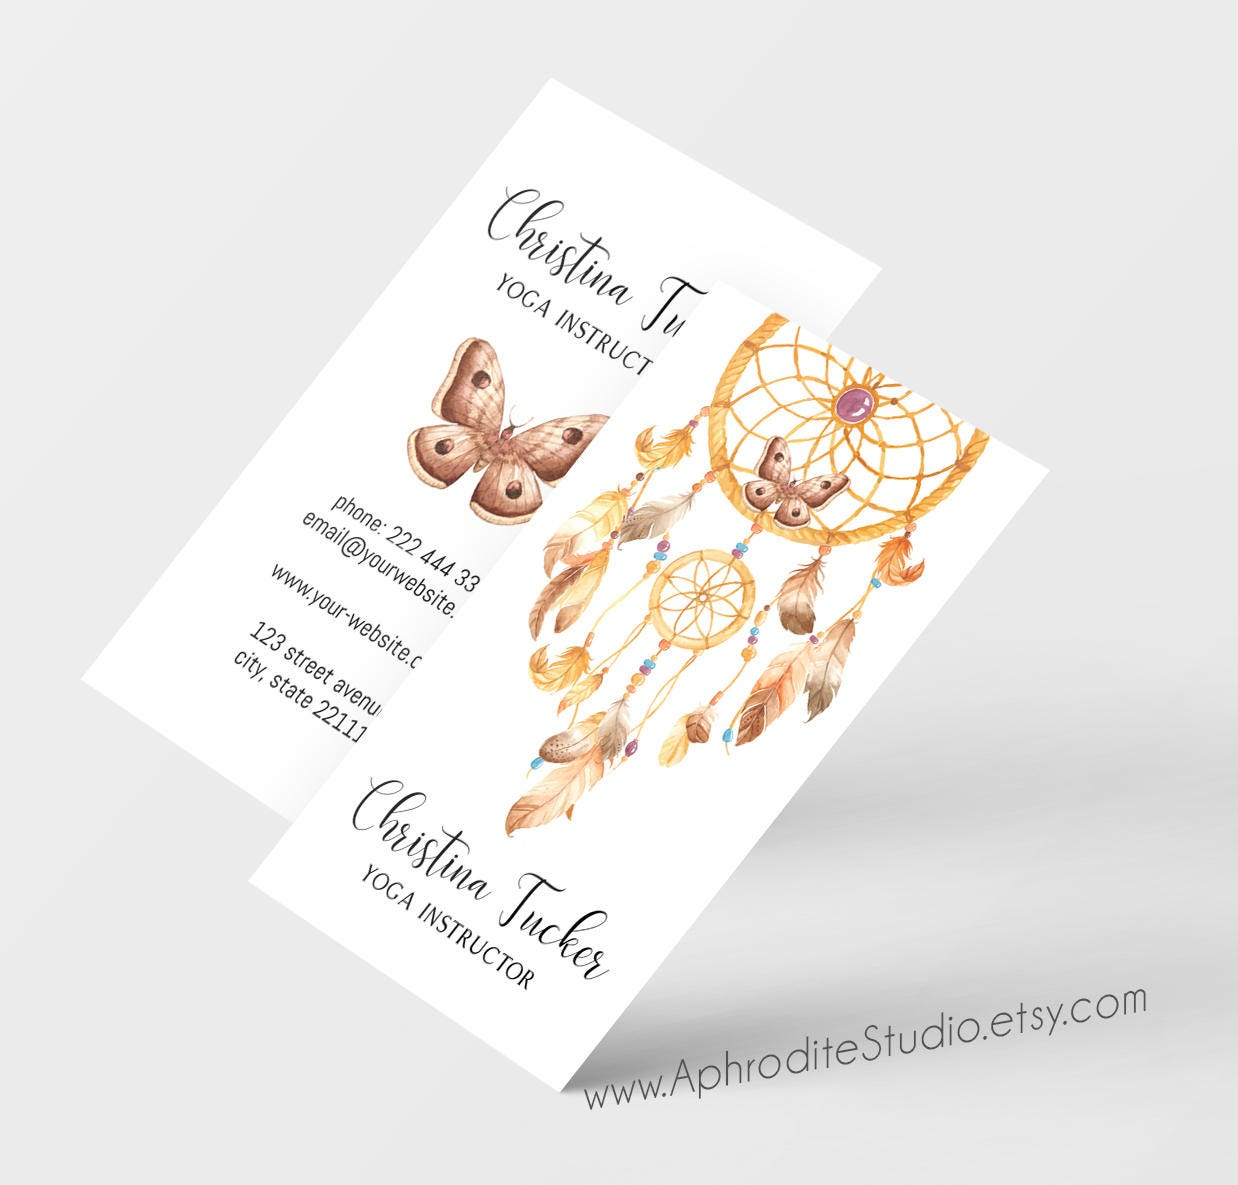 Business cards - Yoga business cards - Printable business cards ...